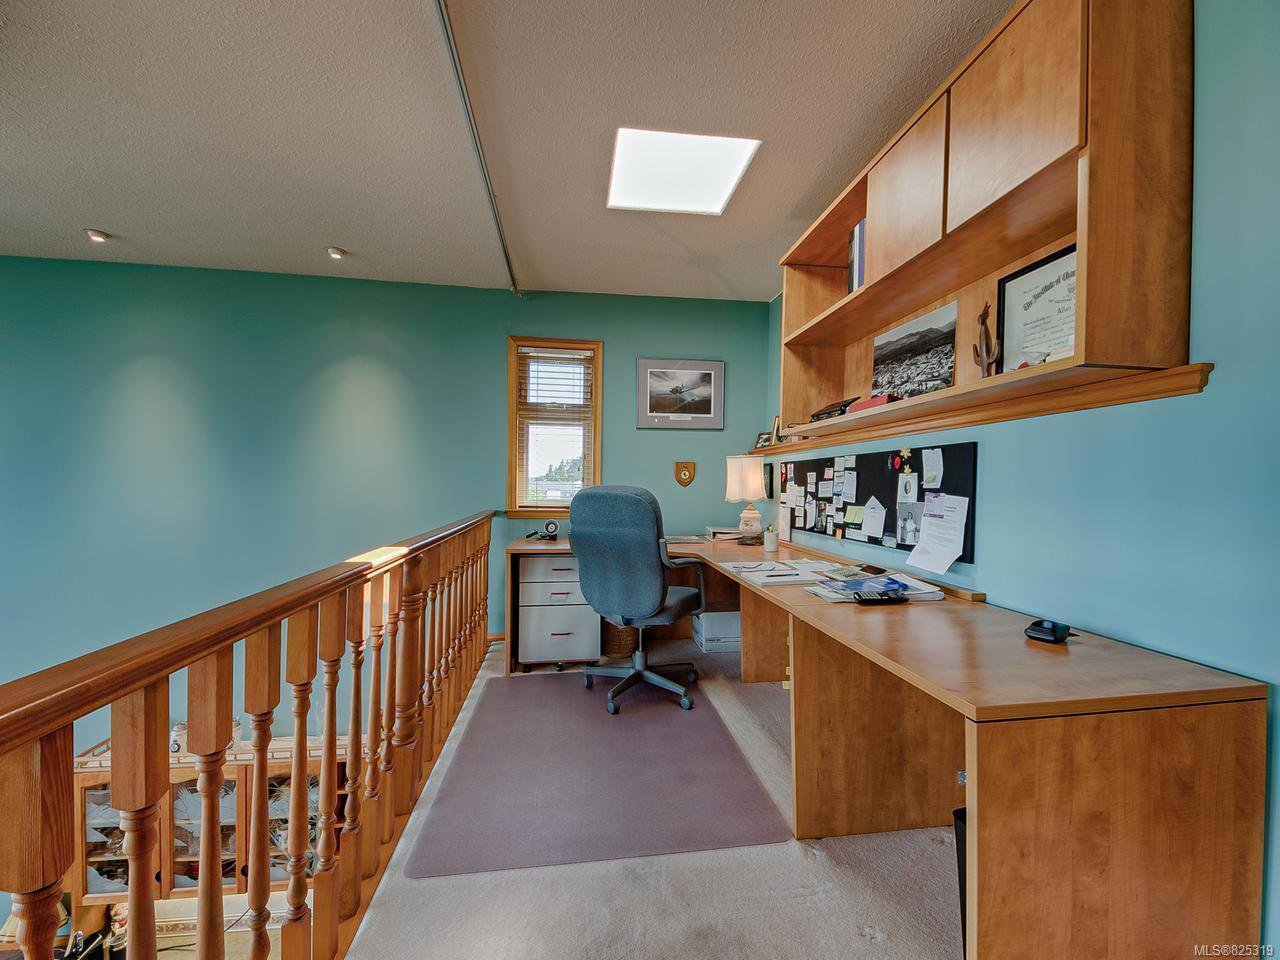 Photo 14: Photos: 403 700 S Island Hwy in CAMPBELL RIVER: CR Campbell River Central Condo for sale (Campbell River)  : MLS®# 825319